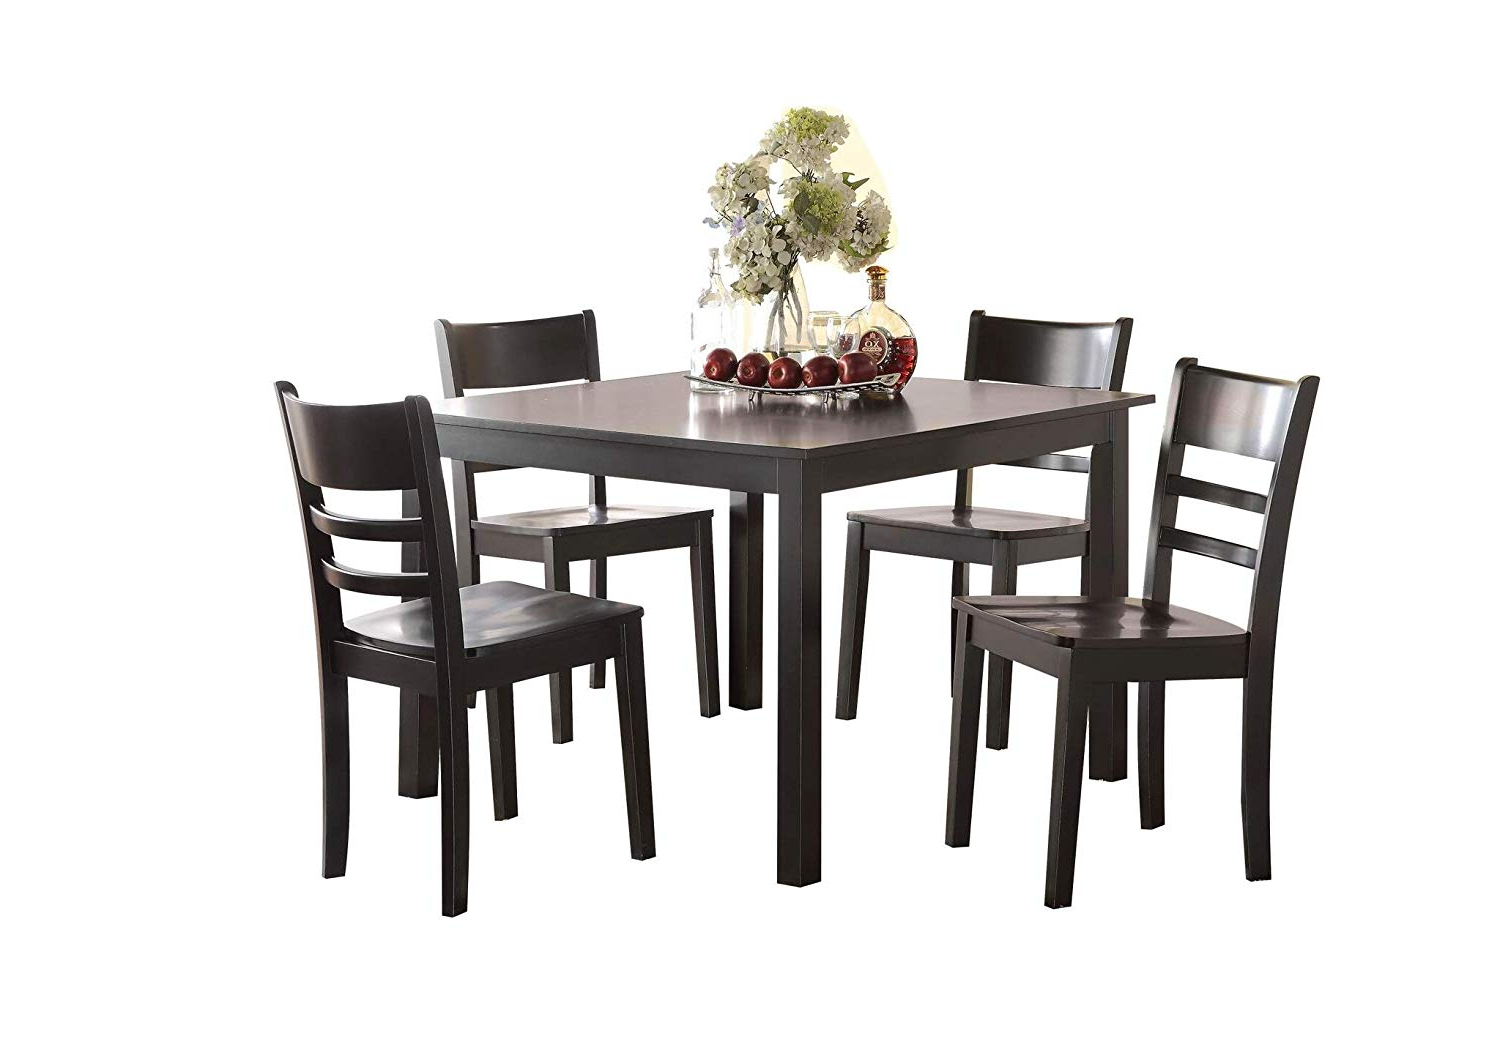 Widely Used Transitional 4 Seating Square Casual Dining Tables With Regard To Major Q 5Pc Pack Transitional Style Casual Black Finish Set With Dining Table And Ladder Backrest Side Chairs, (View 10 of 25)